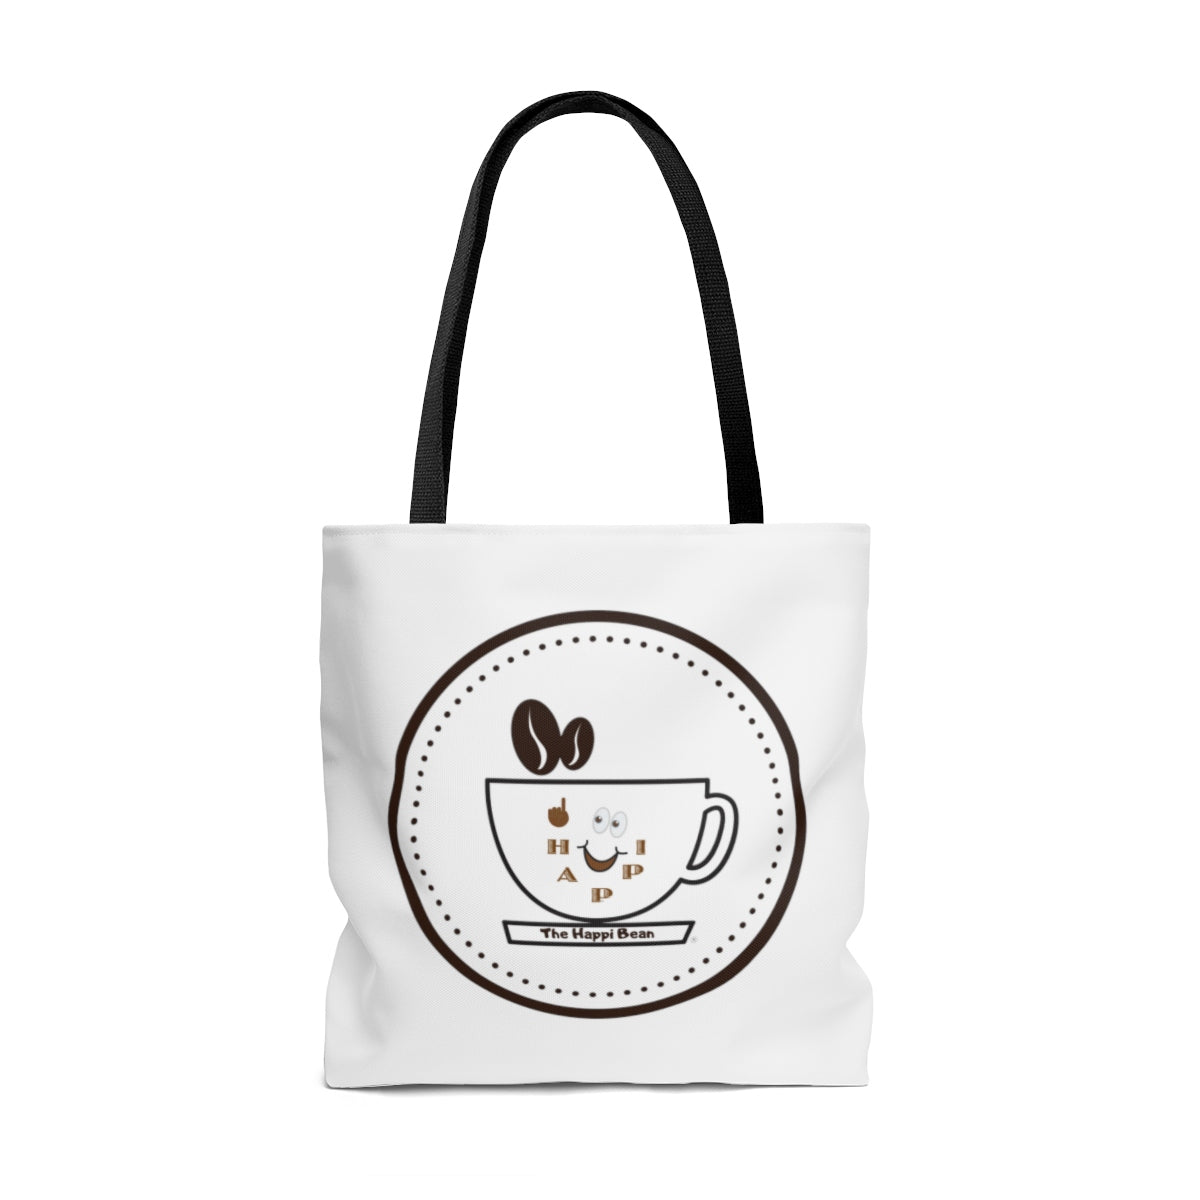 The Happi Bean Tote Bag